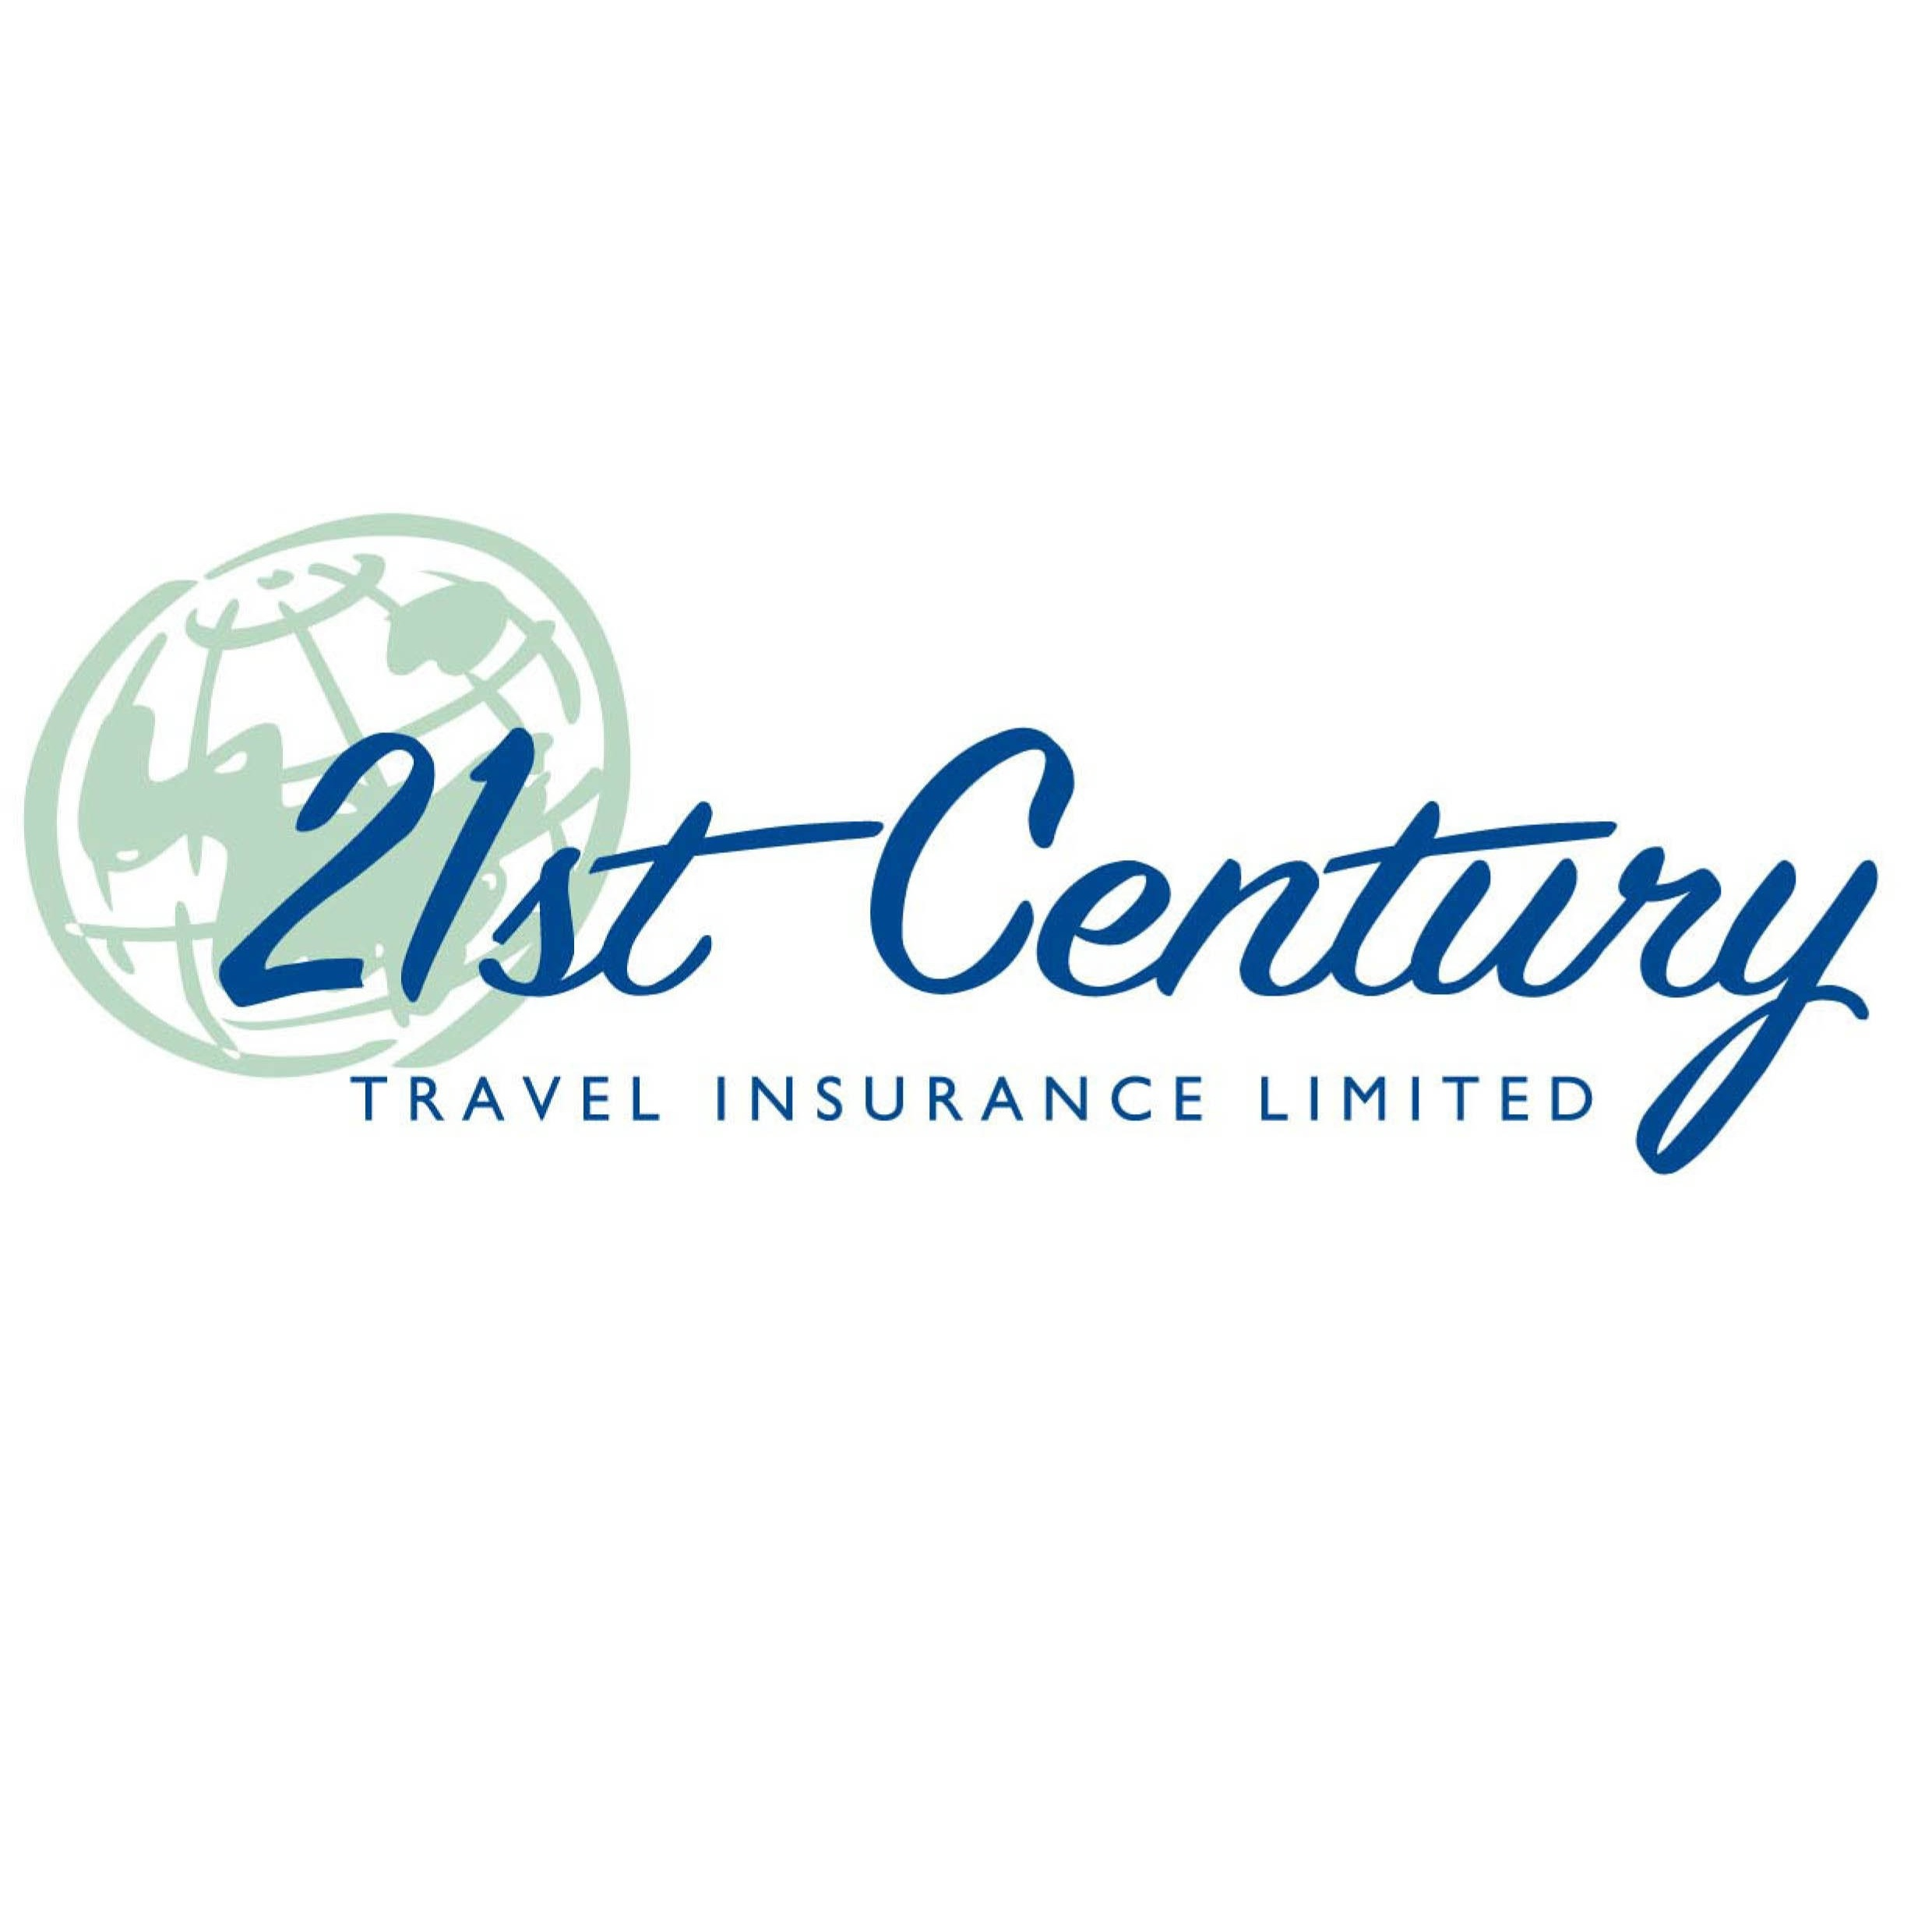 21st Century Travel Insurance Ltd logo